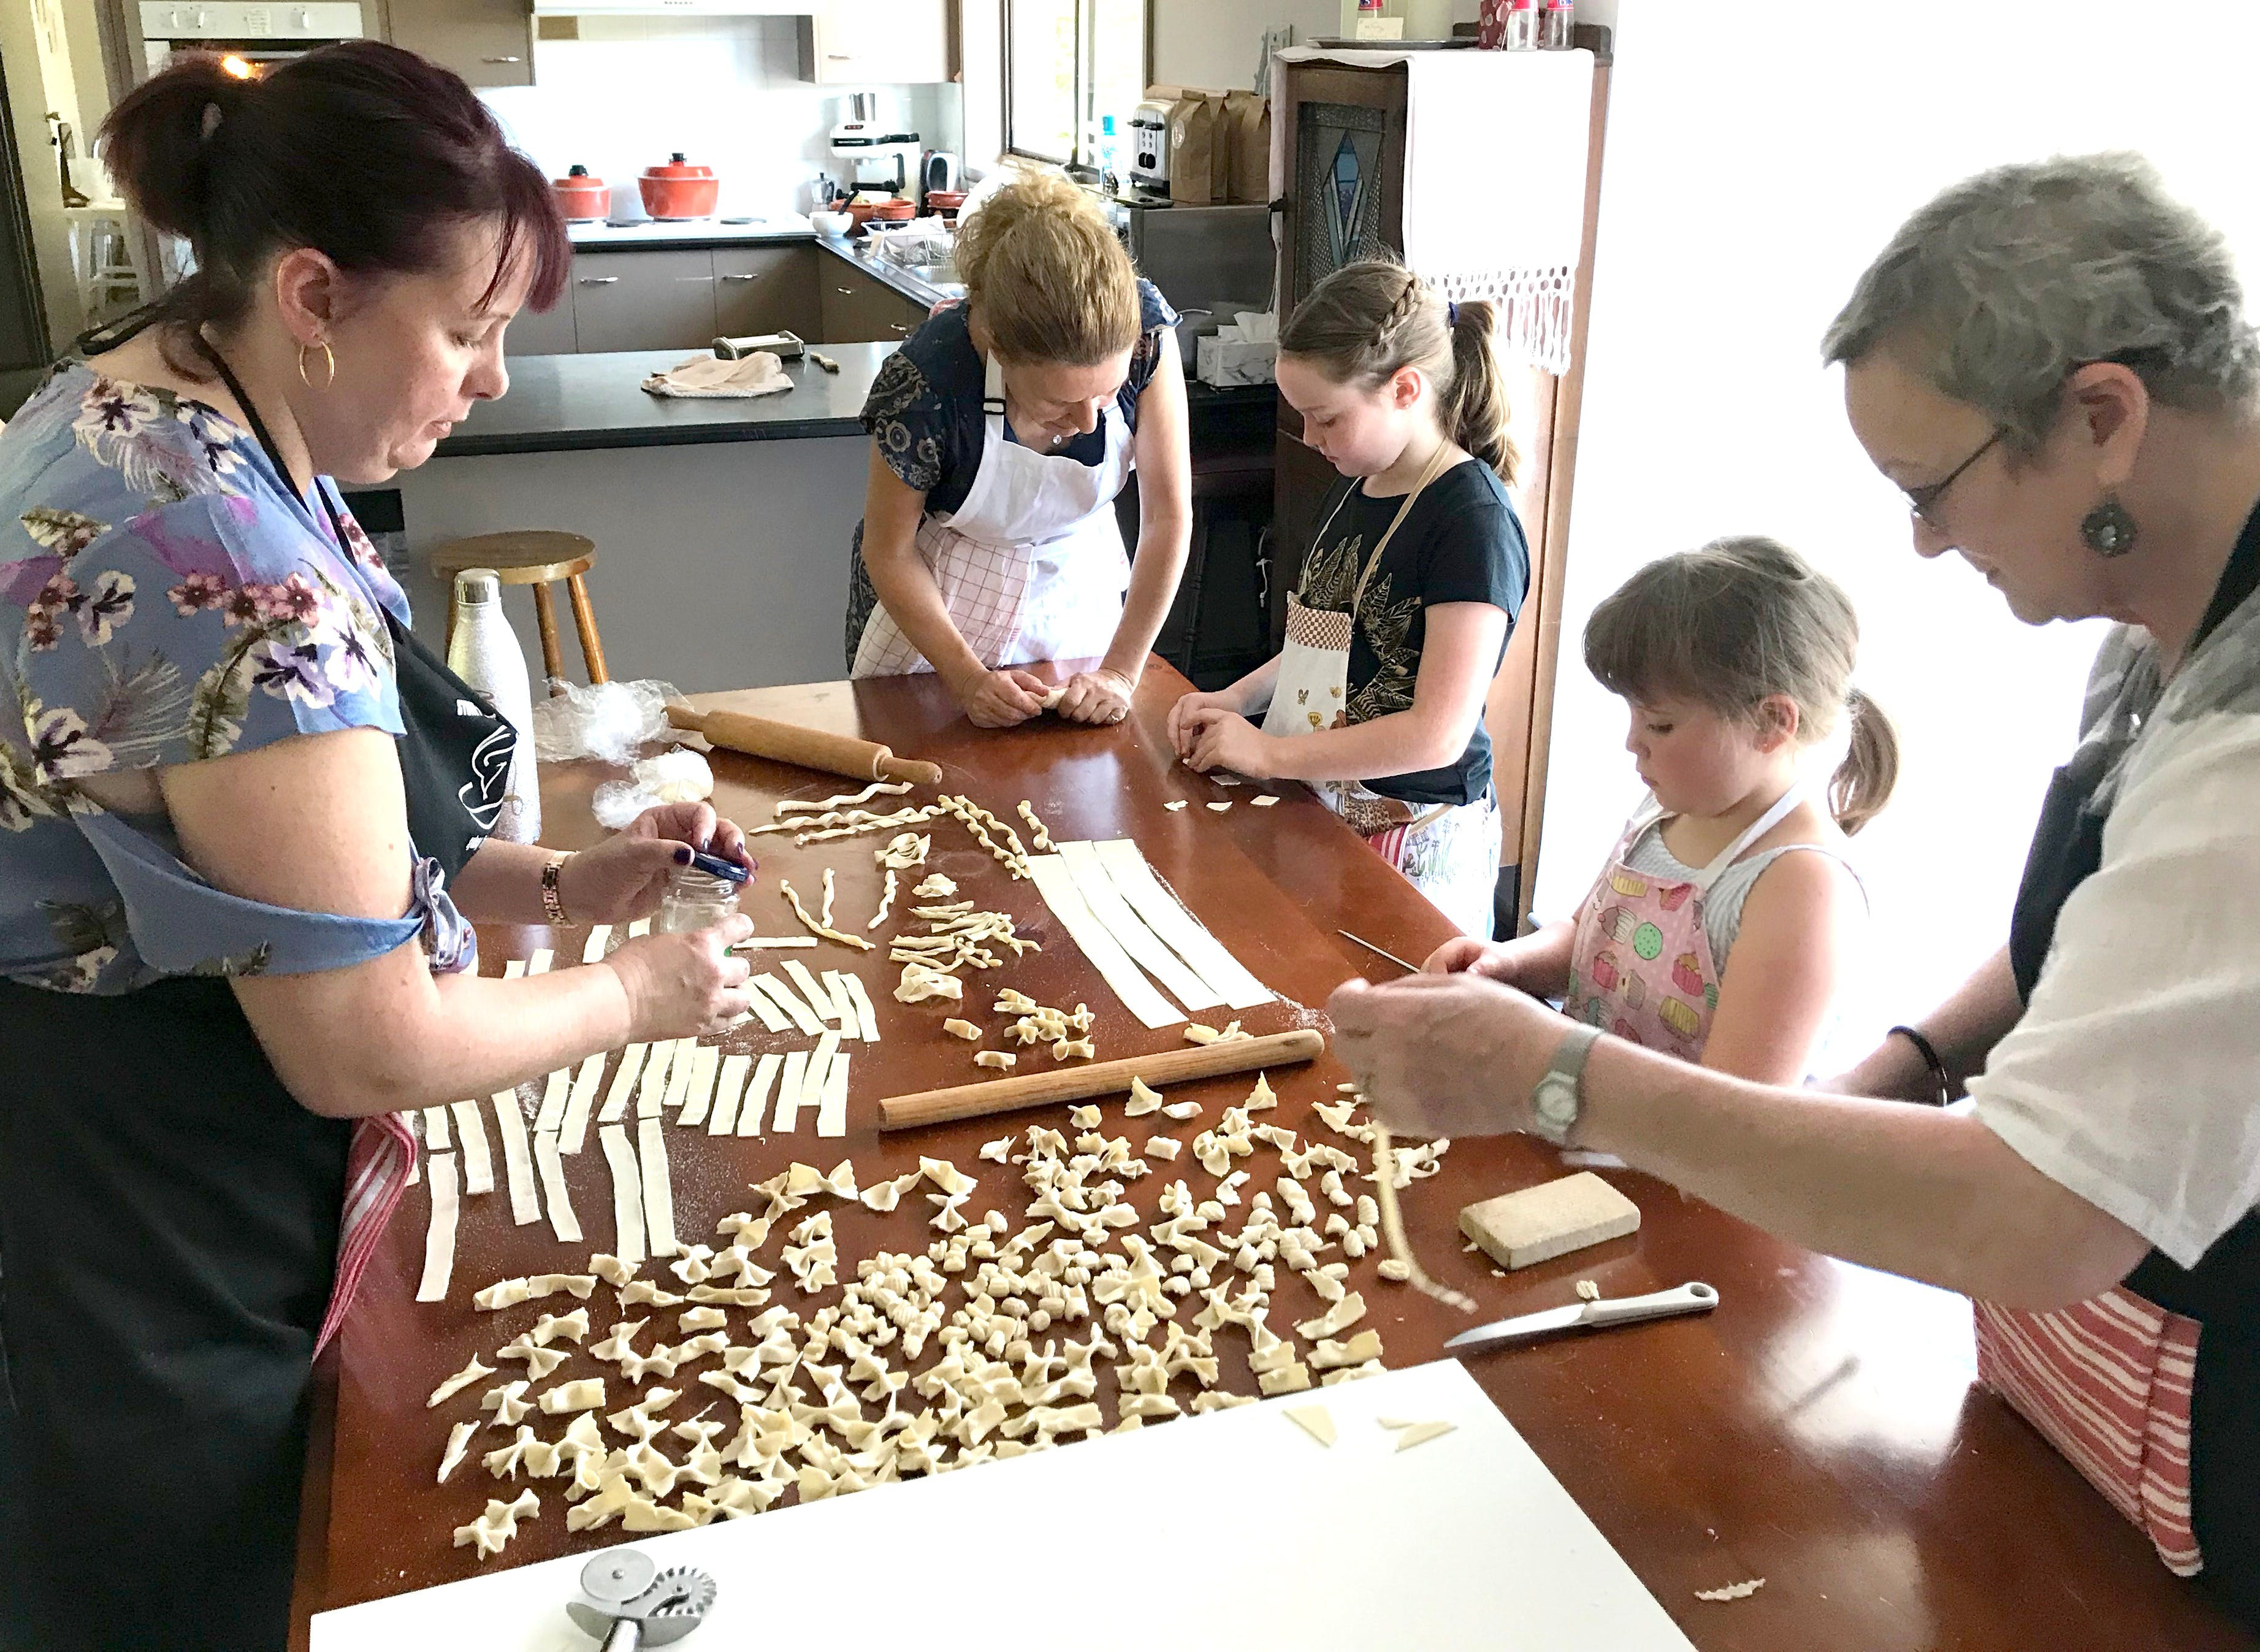 Kids Pasta Making Class - hands on fun at your house - Accommodation Resorts